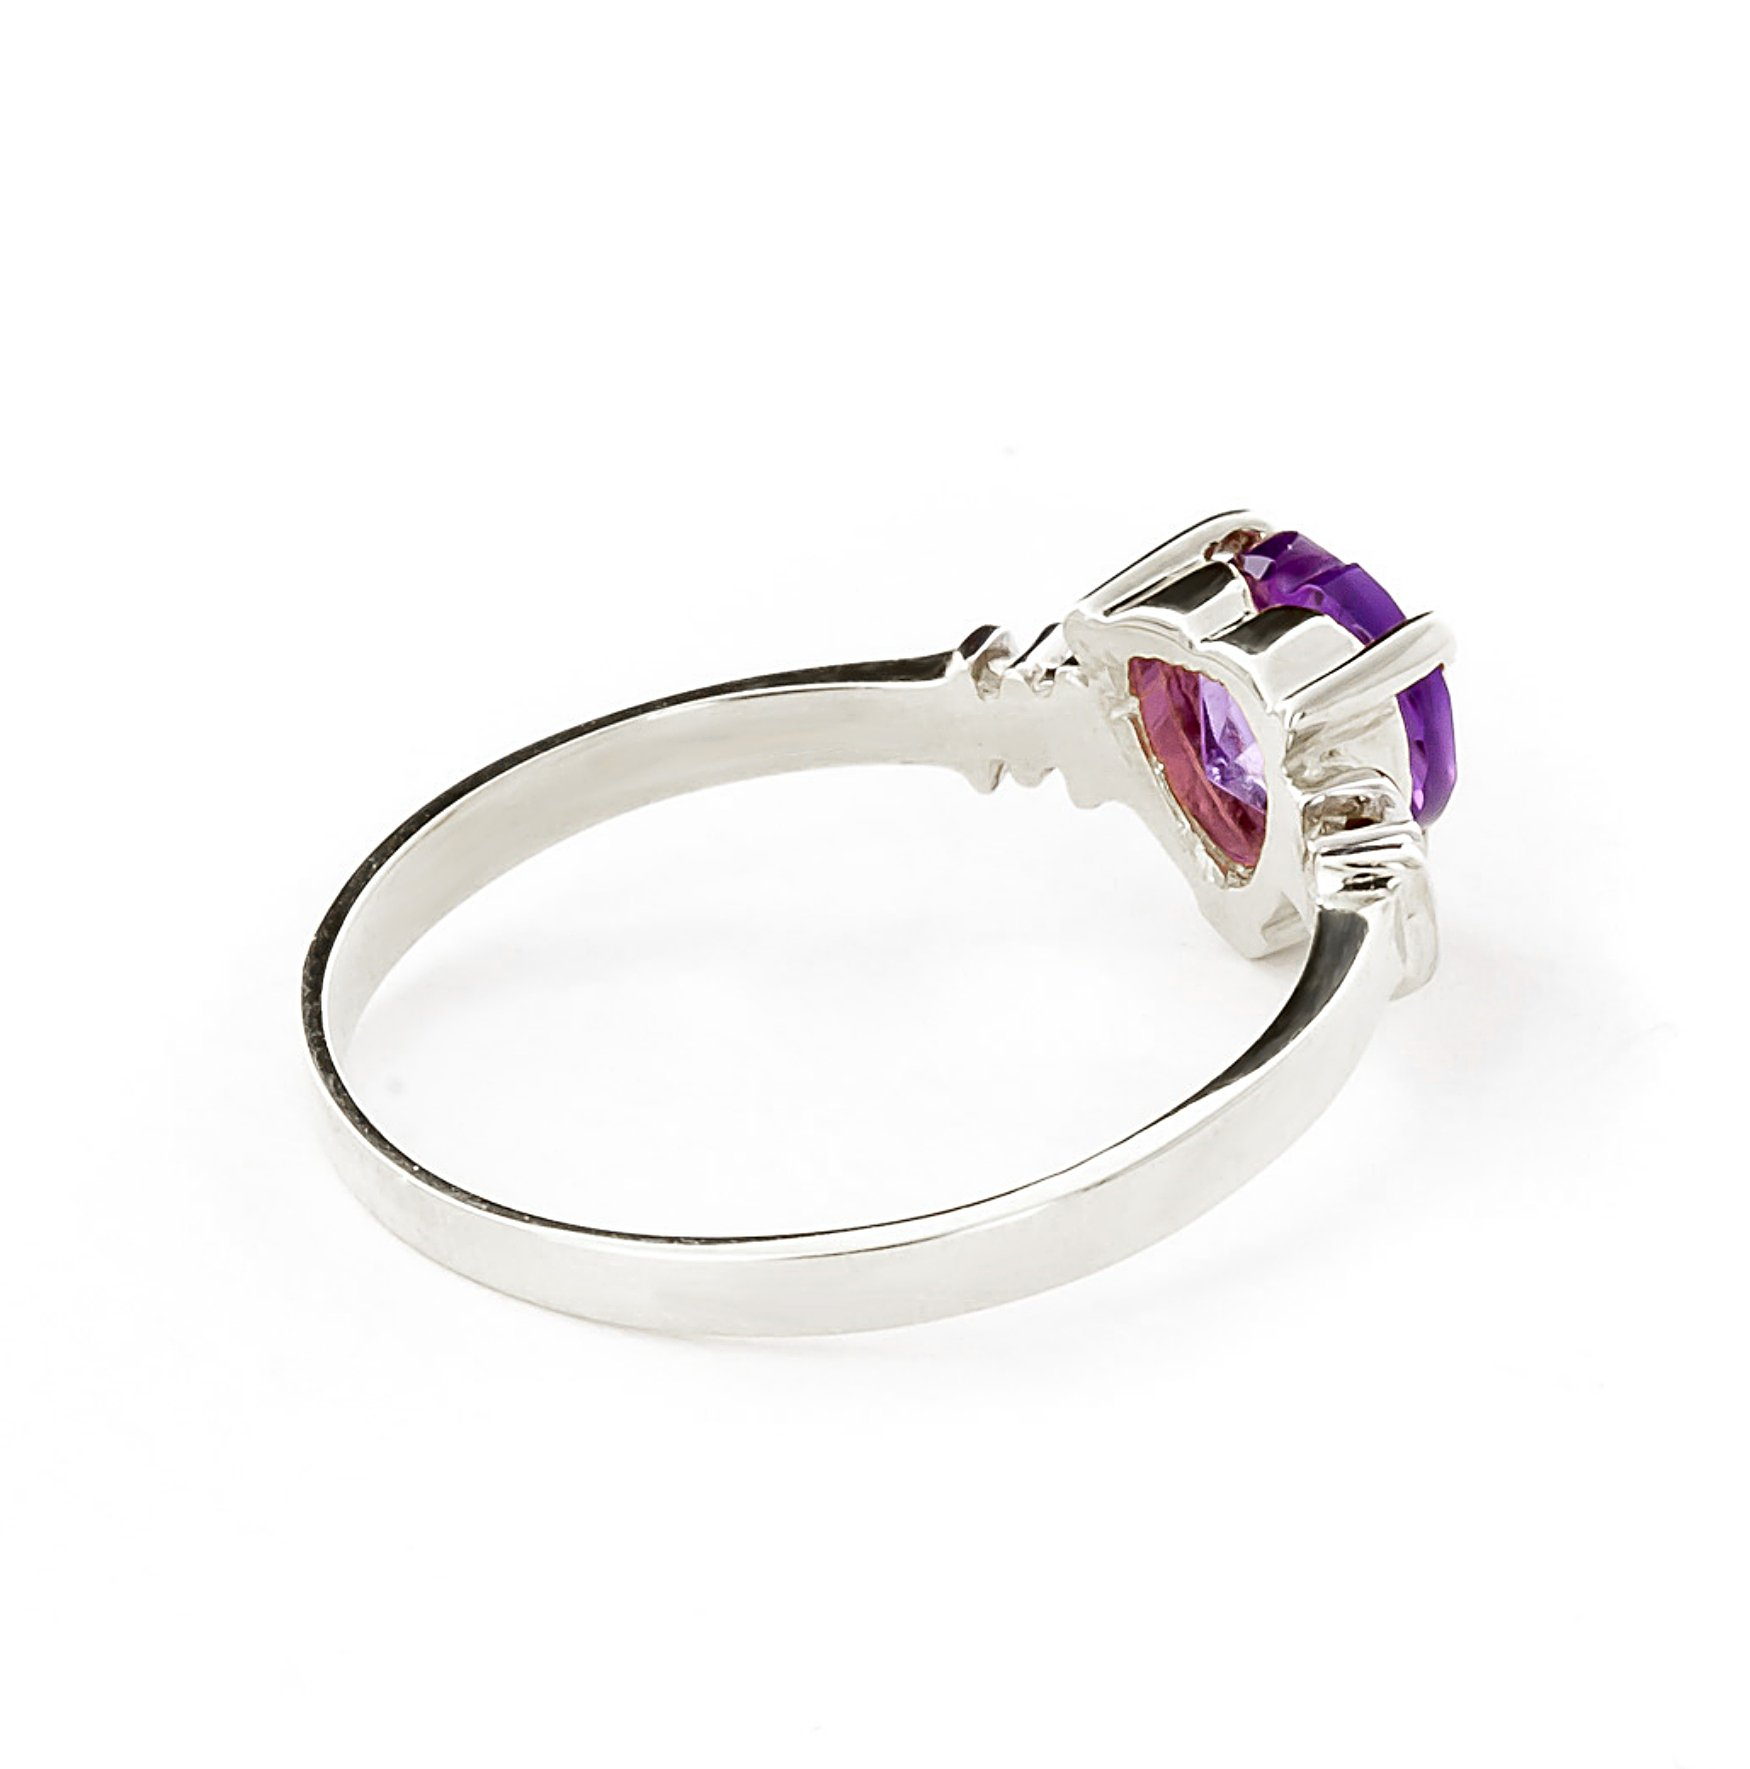 14k White Gold Ring with Genuine Diamonds and Natural Heart-shaped Purple Amethyst - Size 11 by Galaxy Gold (Image #3)